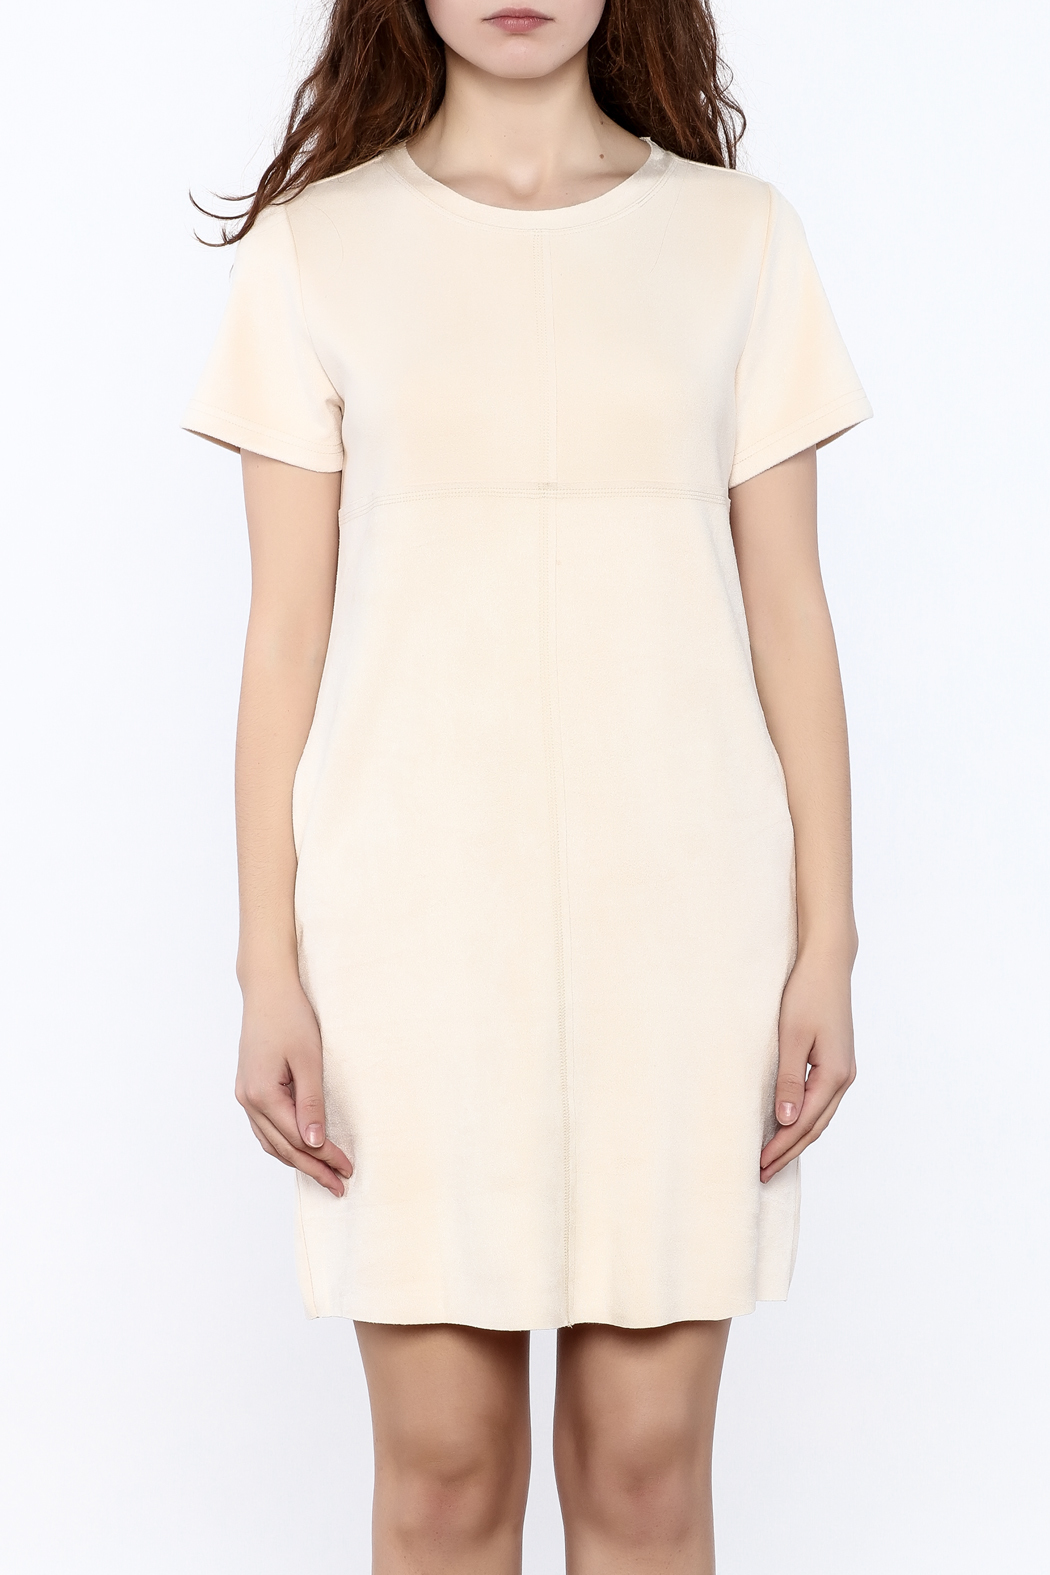 JOH Faux Suede Shift Dress - Side Cropped Image